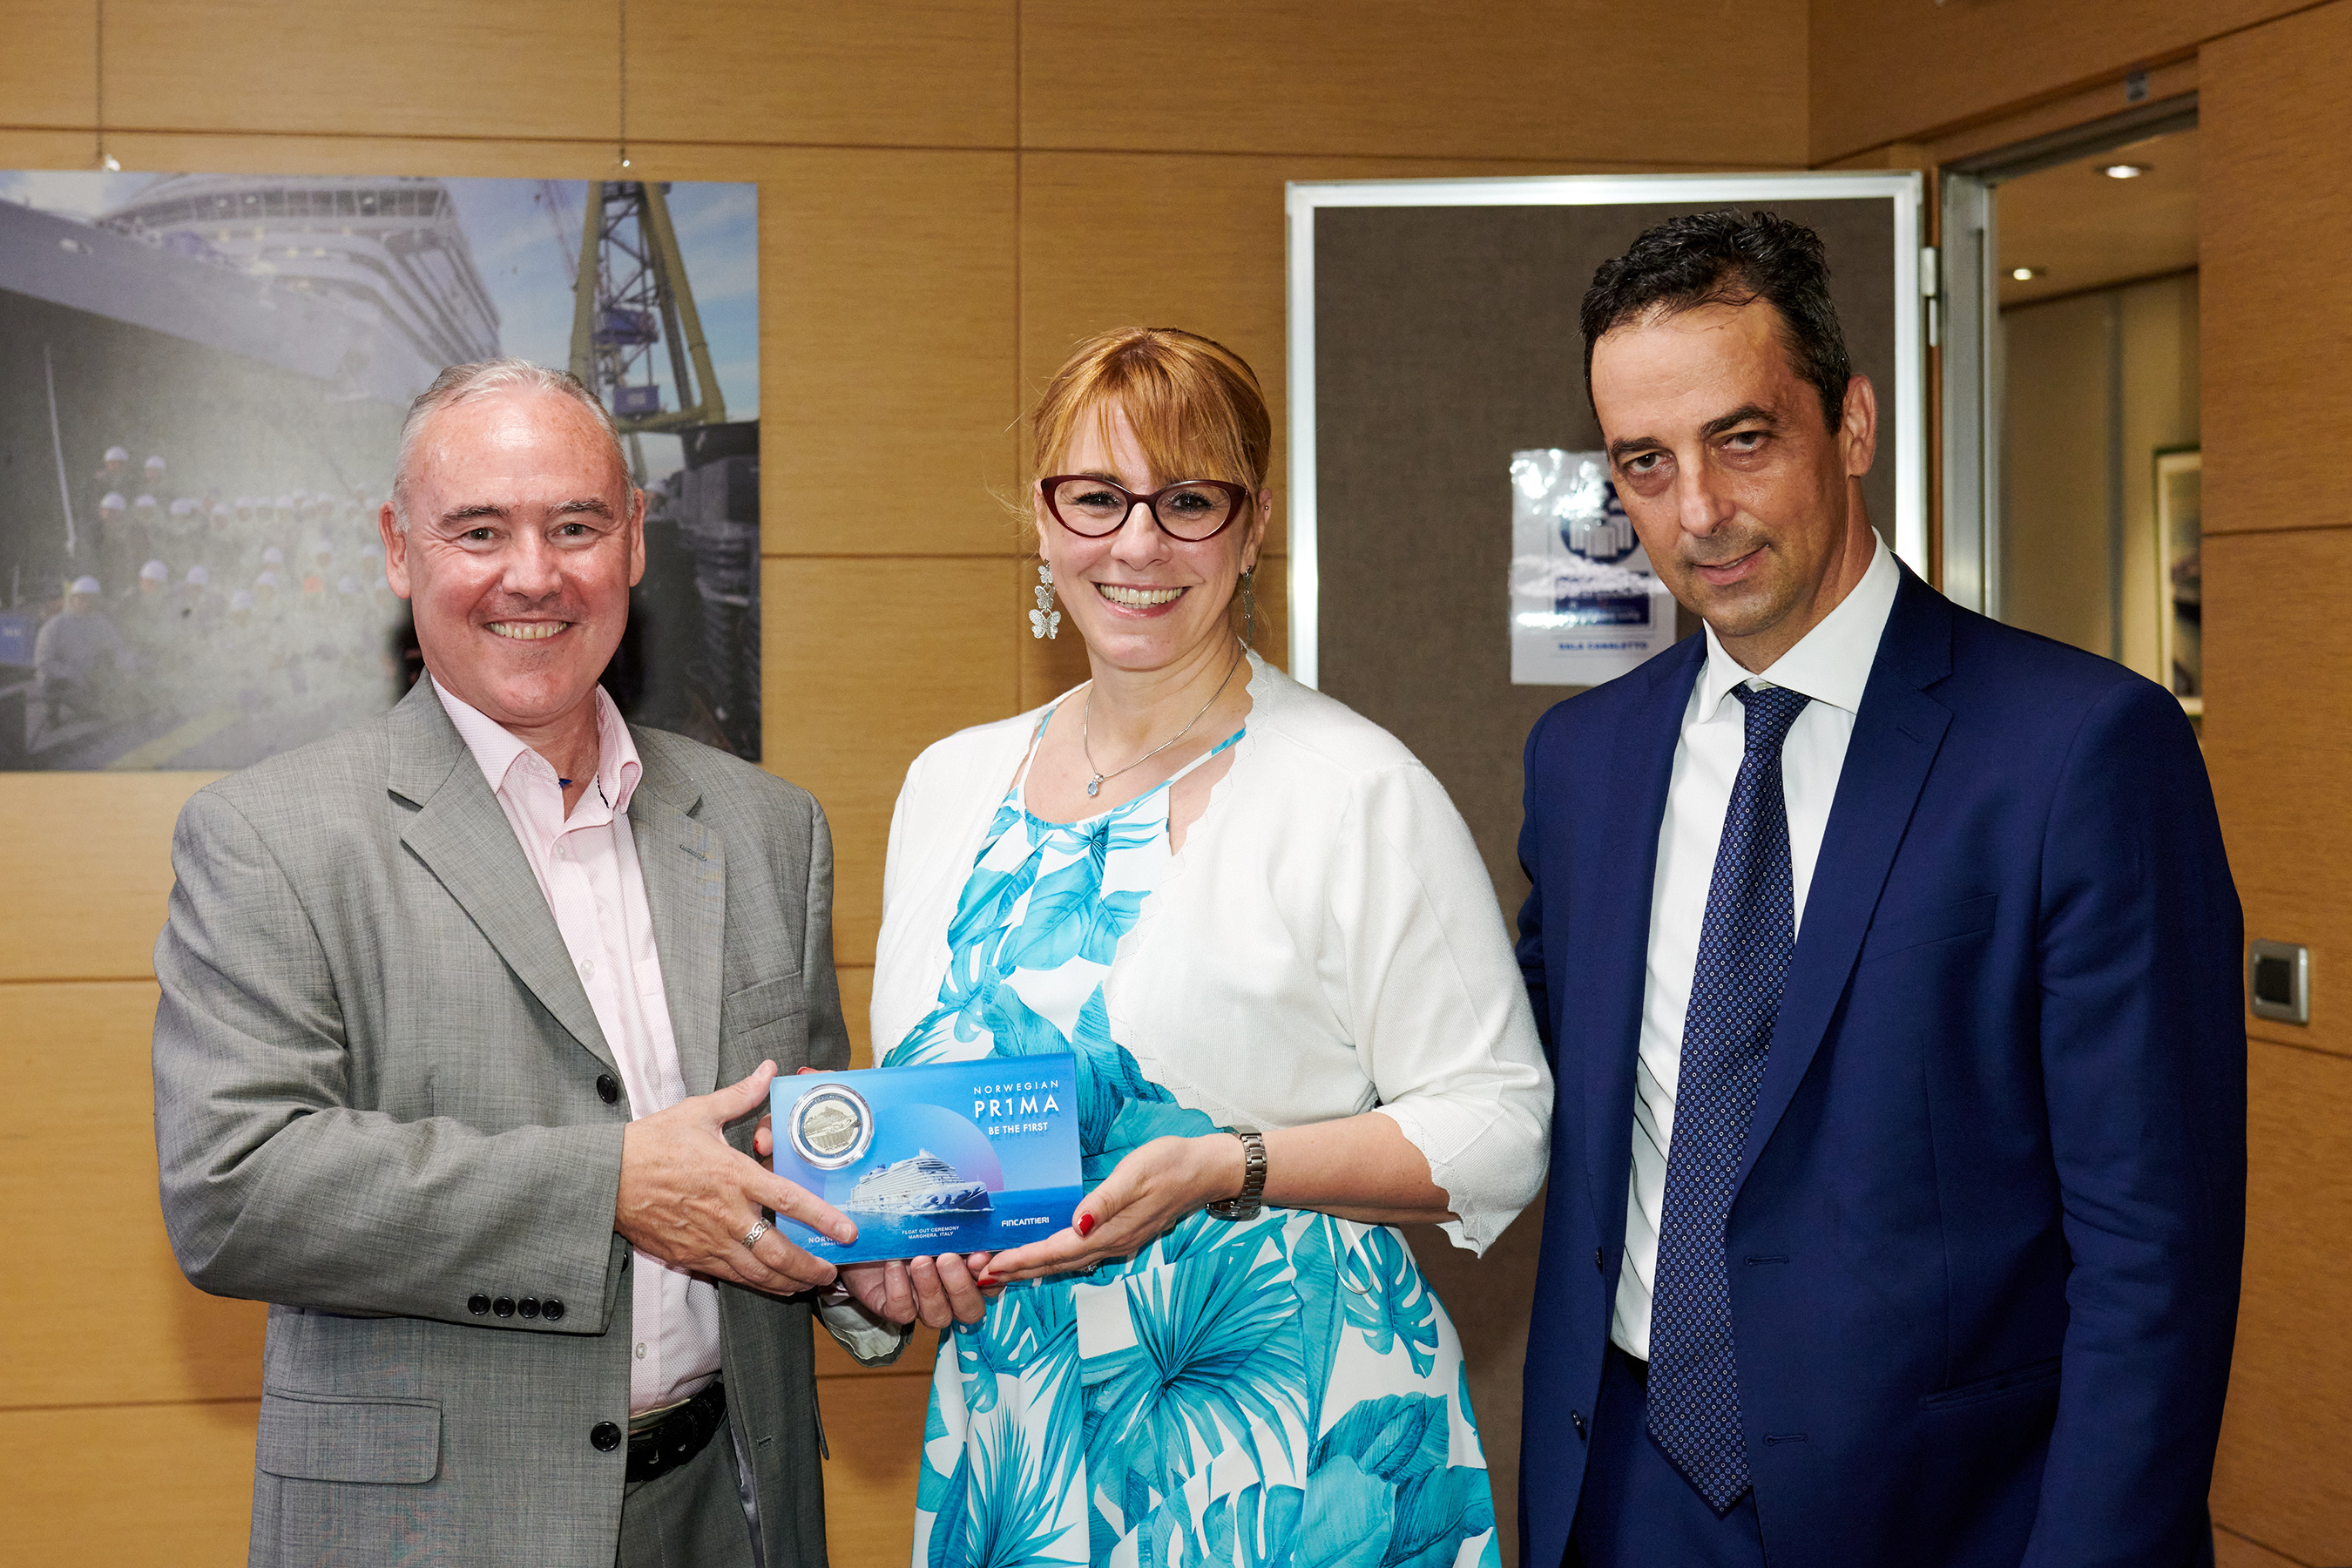 Eamonn Ferrin, Vice President of International Business of Norwegian Cruise Line, Tatiana Lazzarin, Shipyard Godmother and Head of Machinery Room Outfitting Technical Office of Fincantieri, and Antonio Quintano, Fincantieri Marghera Shipyard Director, attend the traditional coin ceremony for Norwegian Prima, soon-to-be the newest ship in the NCL fleet. Photo by ©Filippo Vinardi